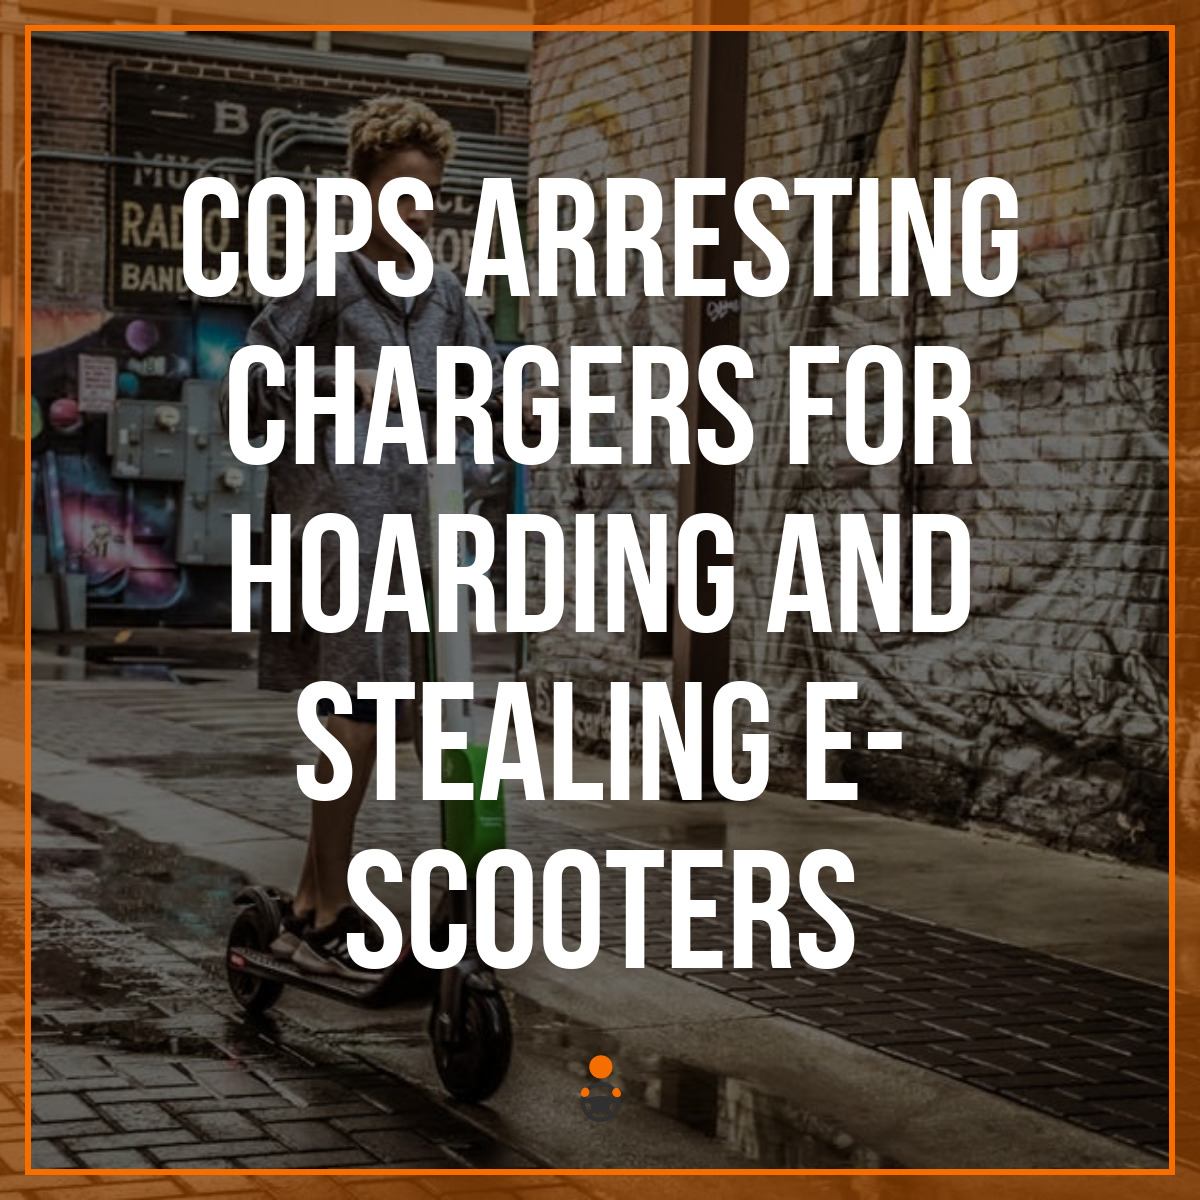 Cops Arresting Chargers for Hoarding and Stealing E-Scooters